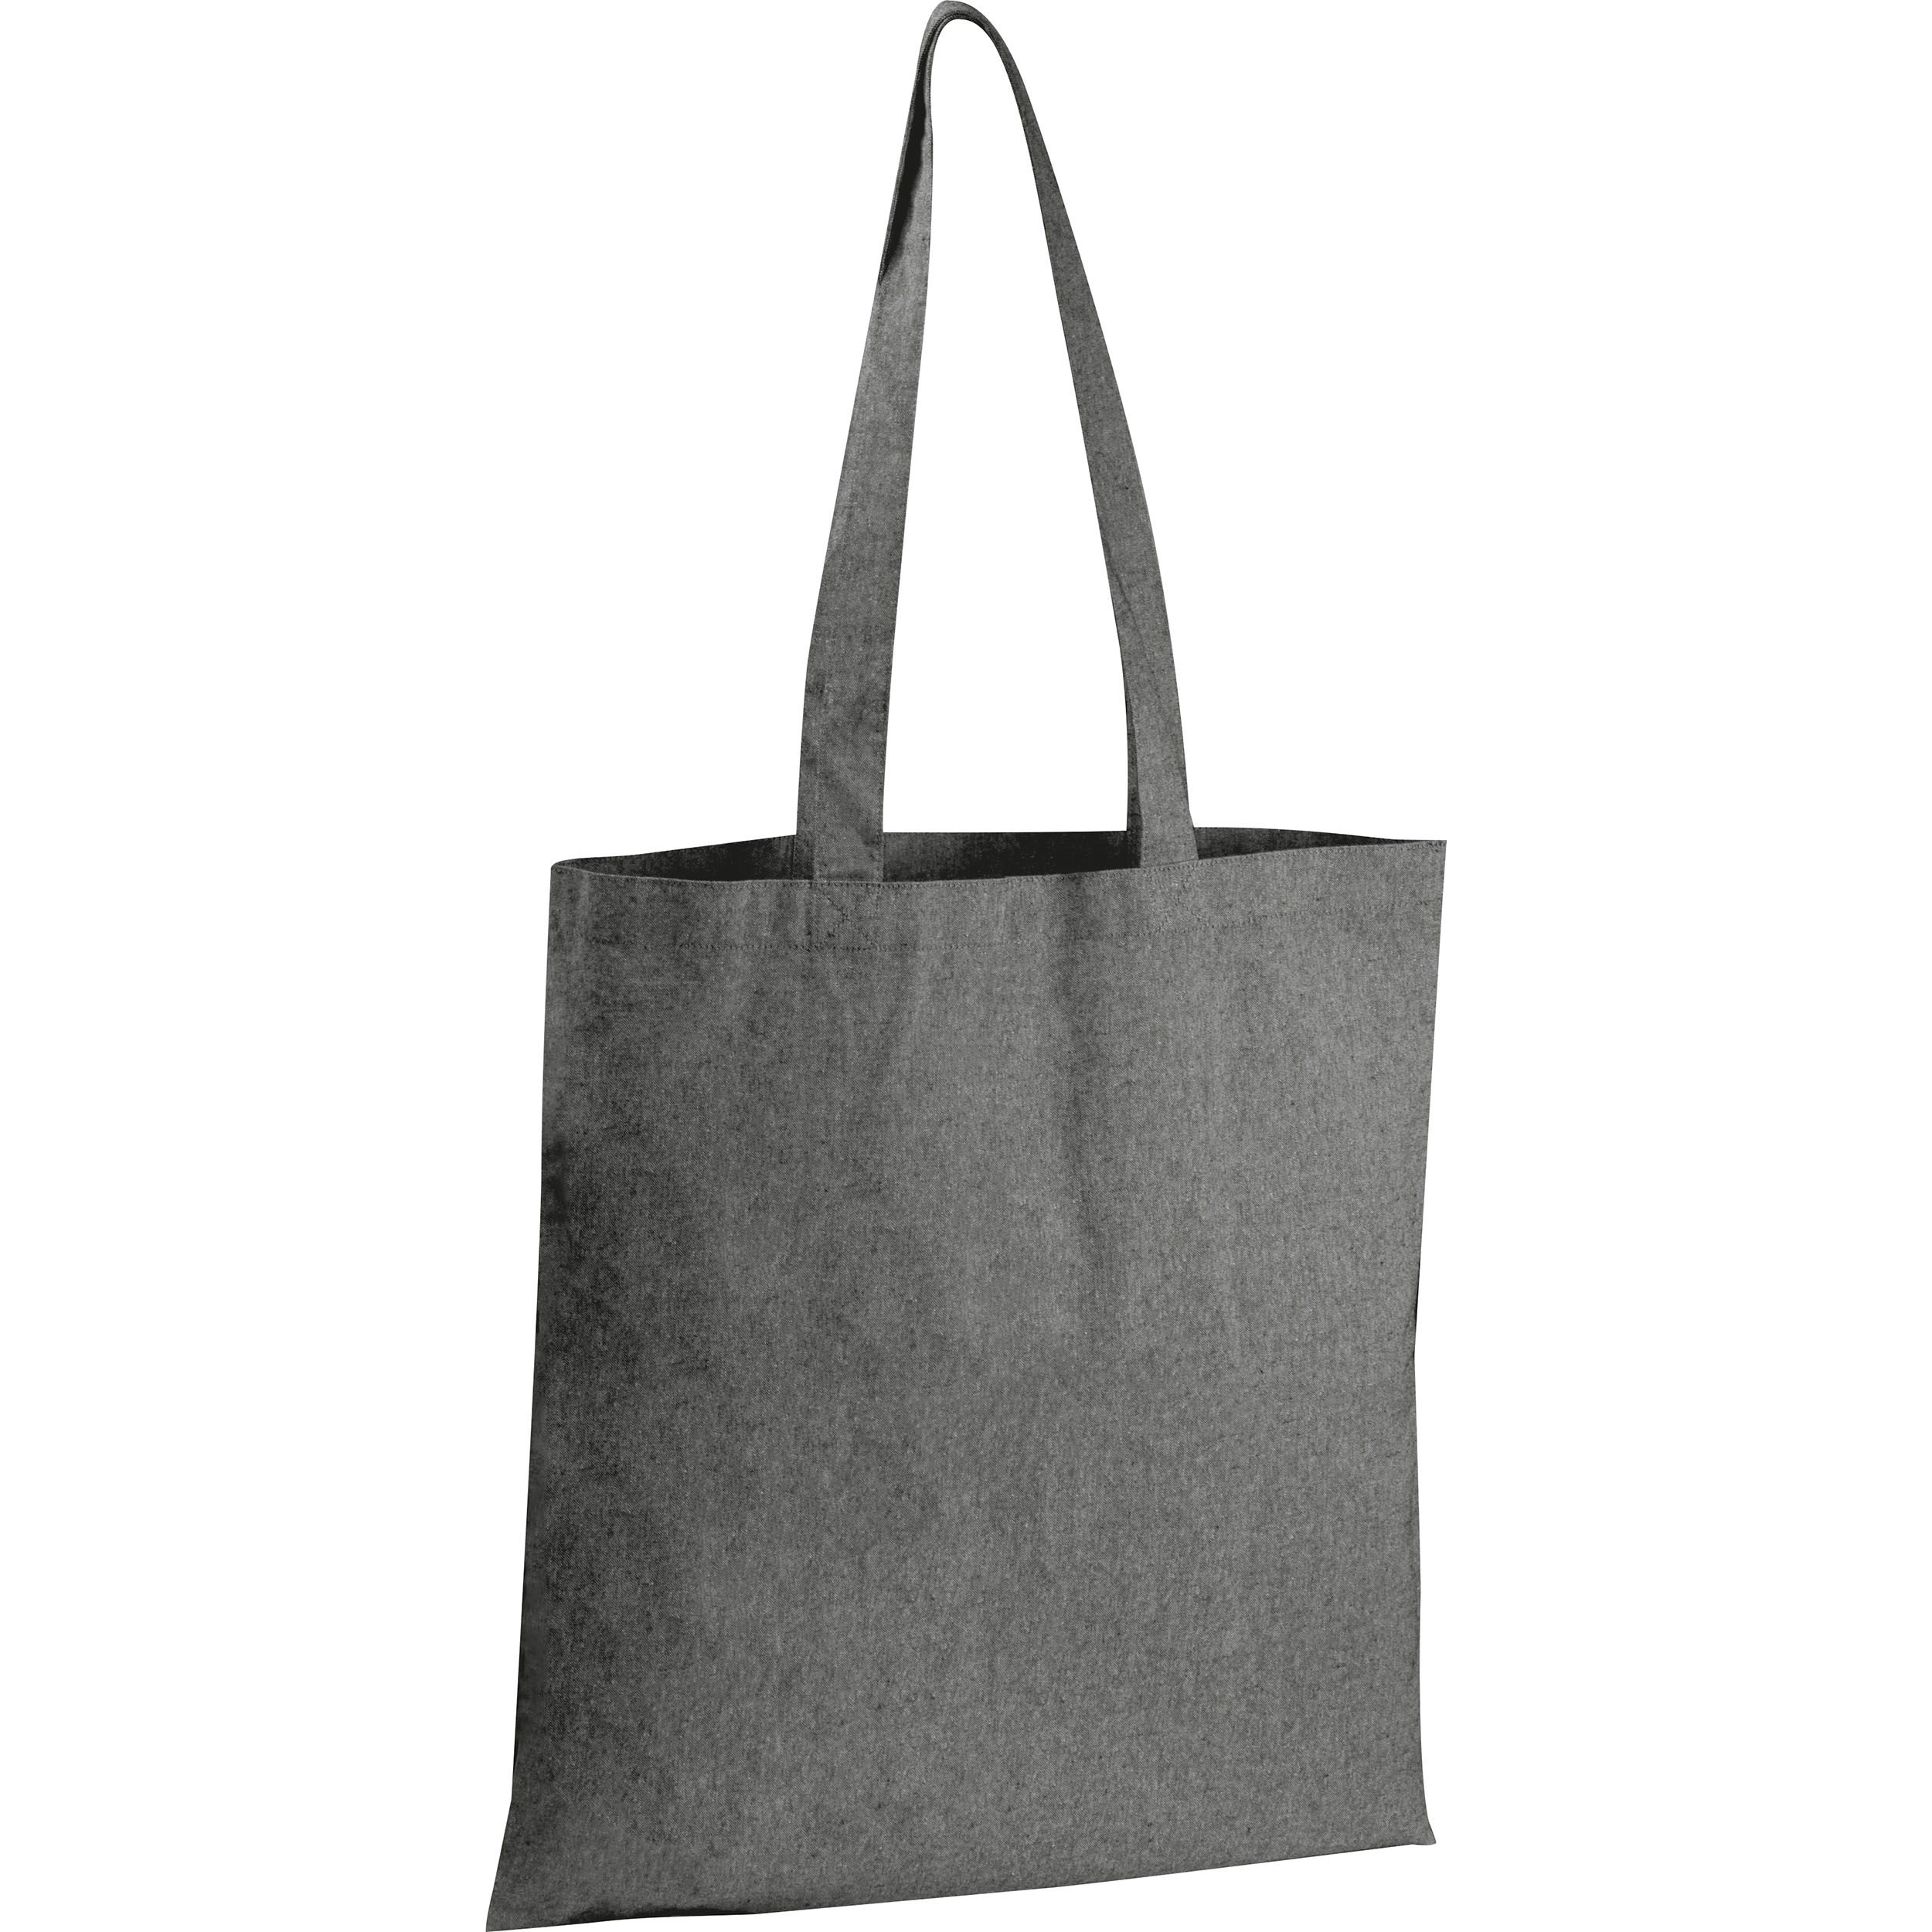 Recycled Cotton Bag with Long Handles